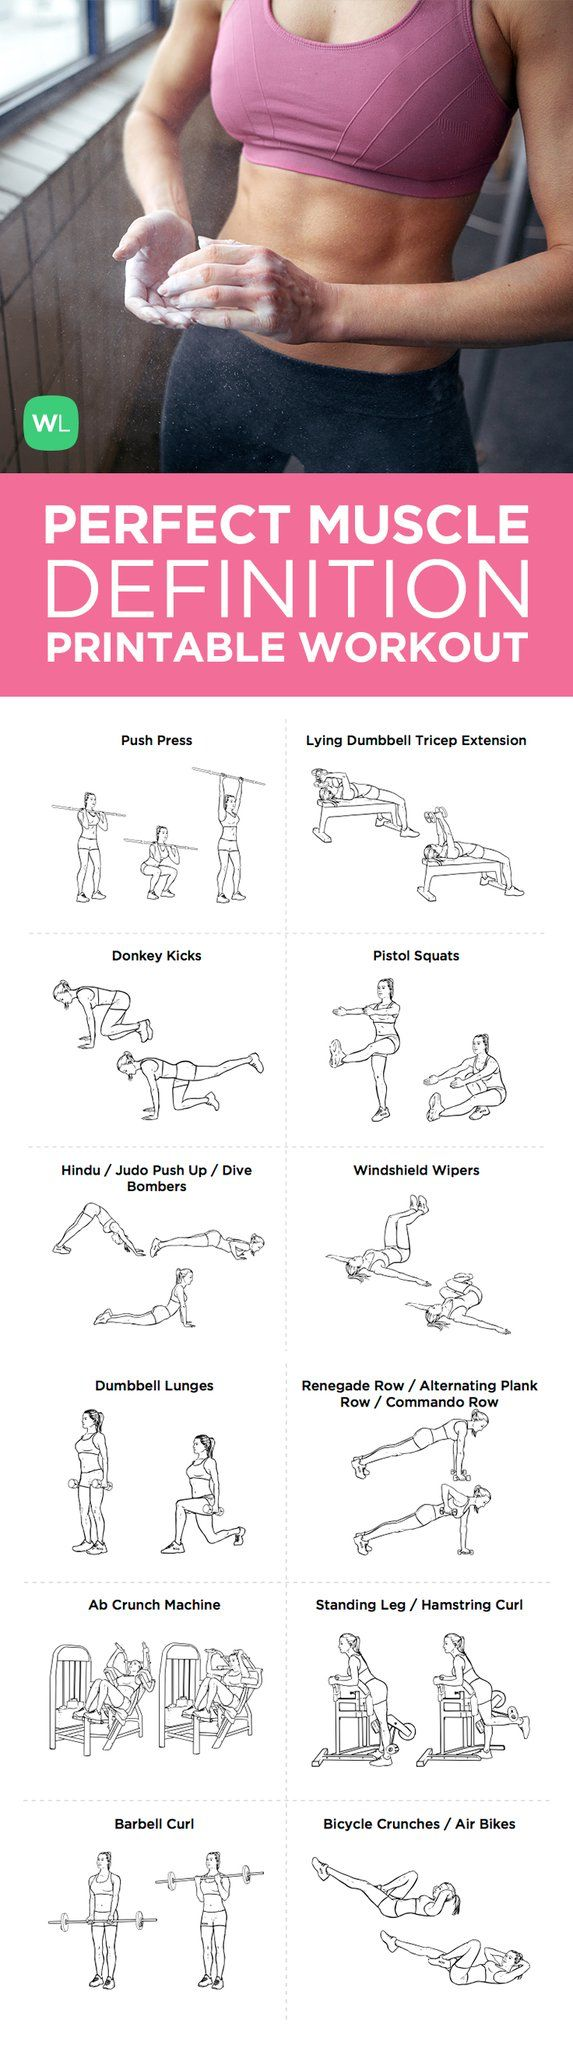 Muscle Definition Builder Full Body Gym printable workout with llir.biz/hz?9cU9